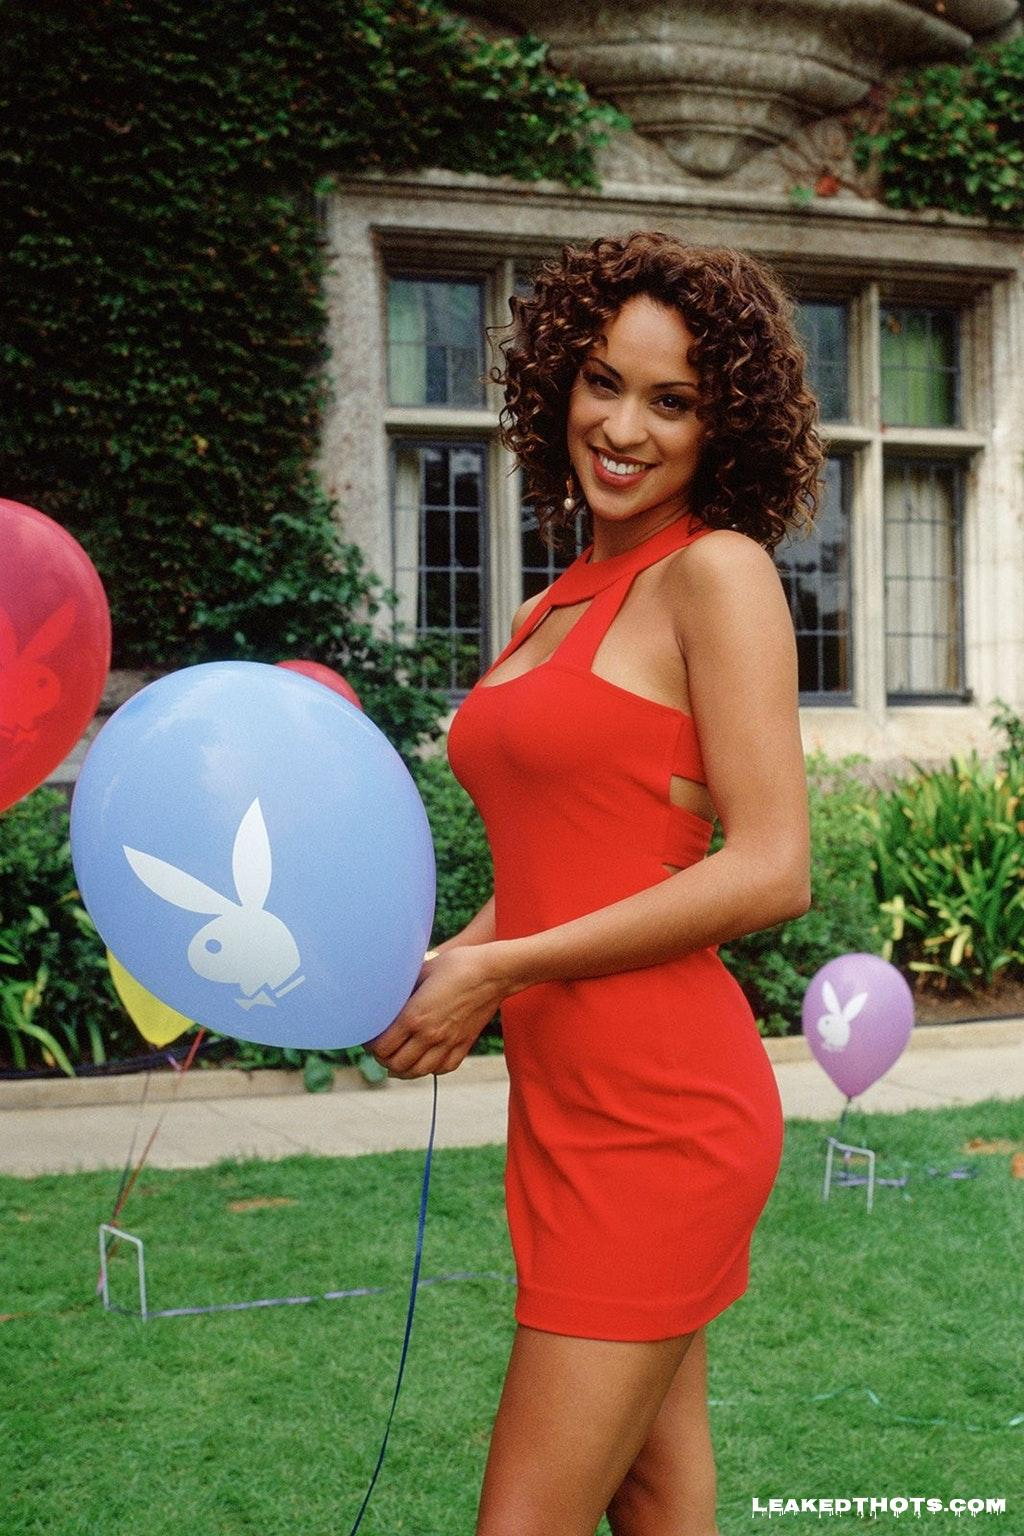 Karyn Parsons Nude Pictures & Classic NSFW Clips - LeakedThots